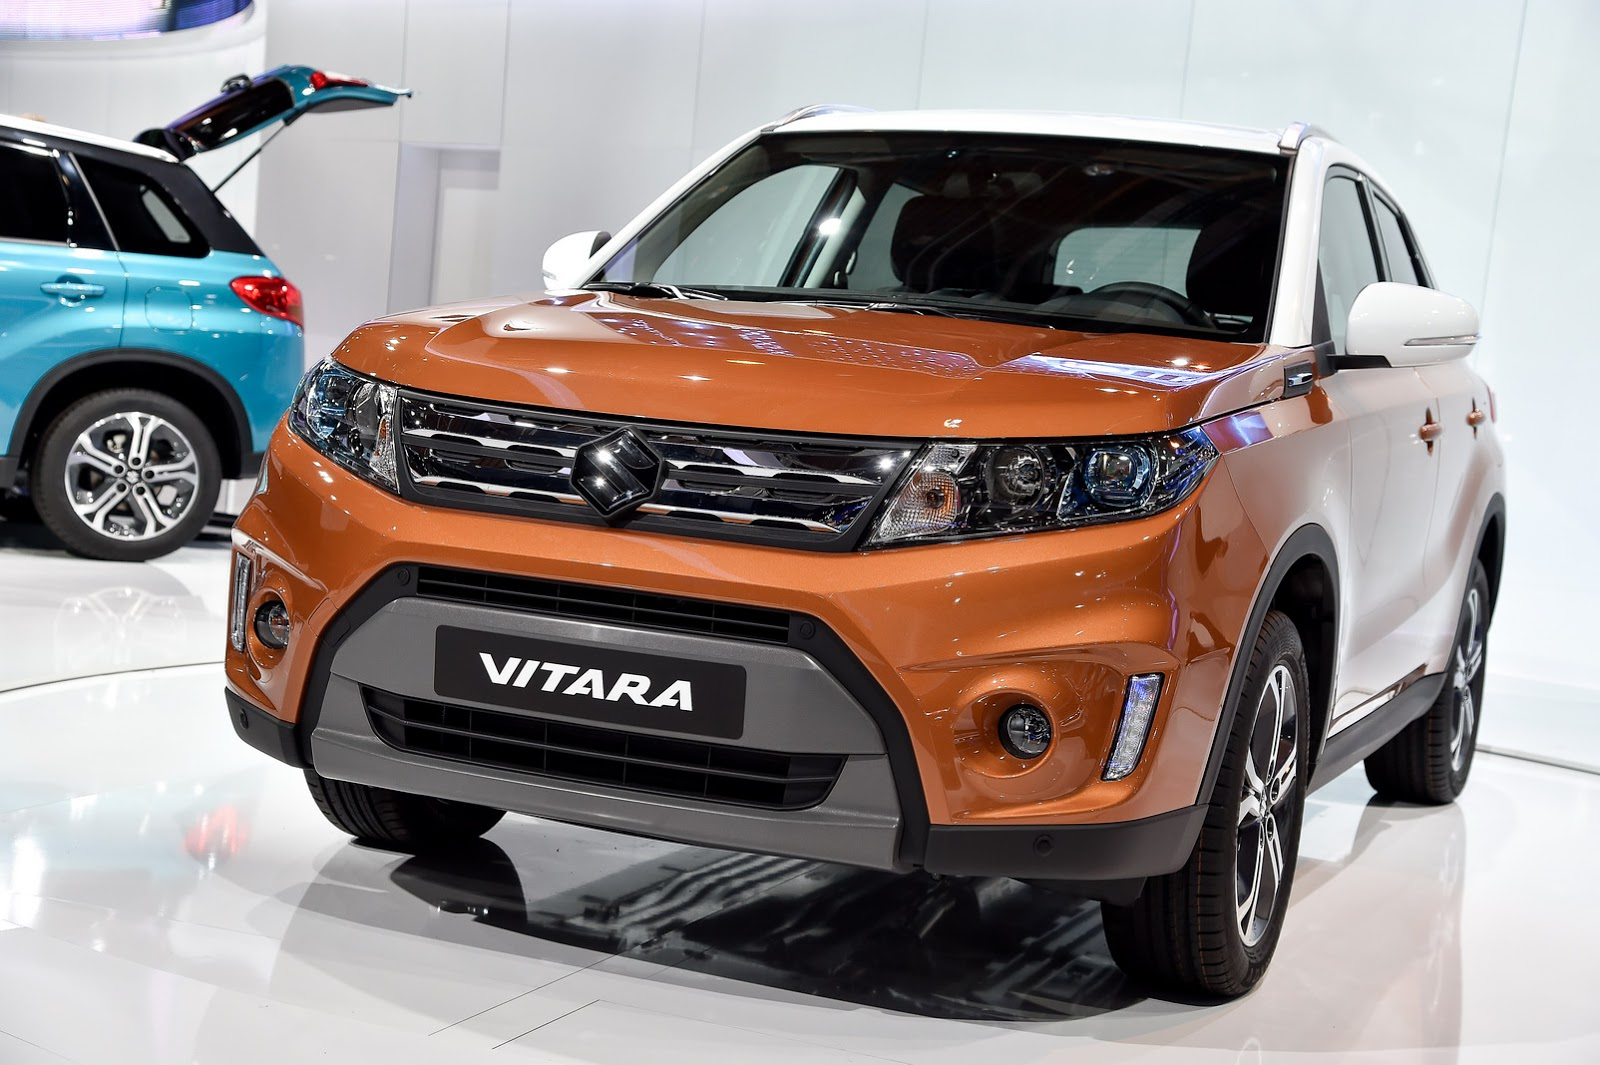 new suzuki vitara compact suv could be mistaken for a ssangyong carscoops. Black Bedroom Furniture Sets. Home Design Ideas